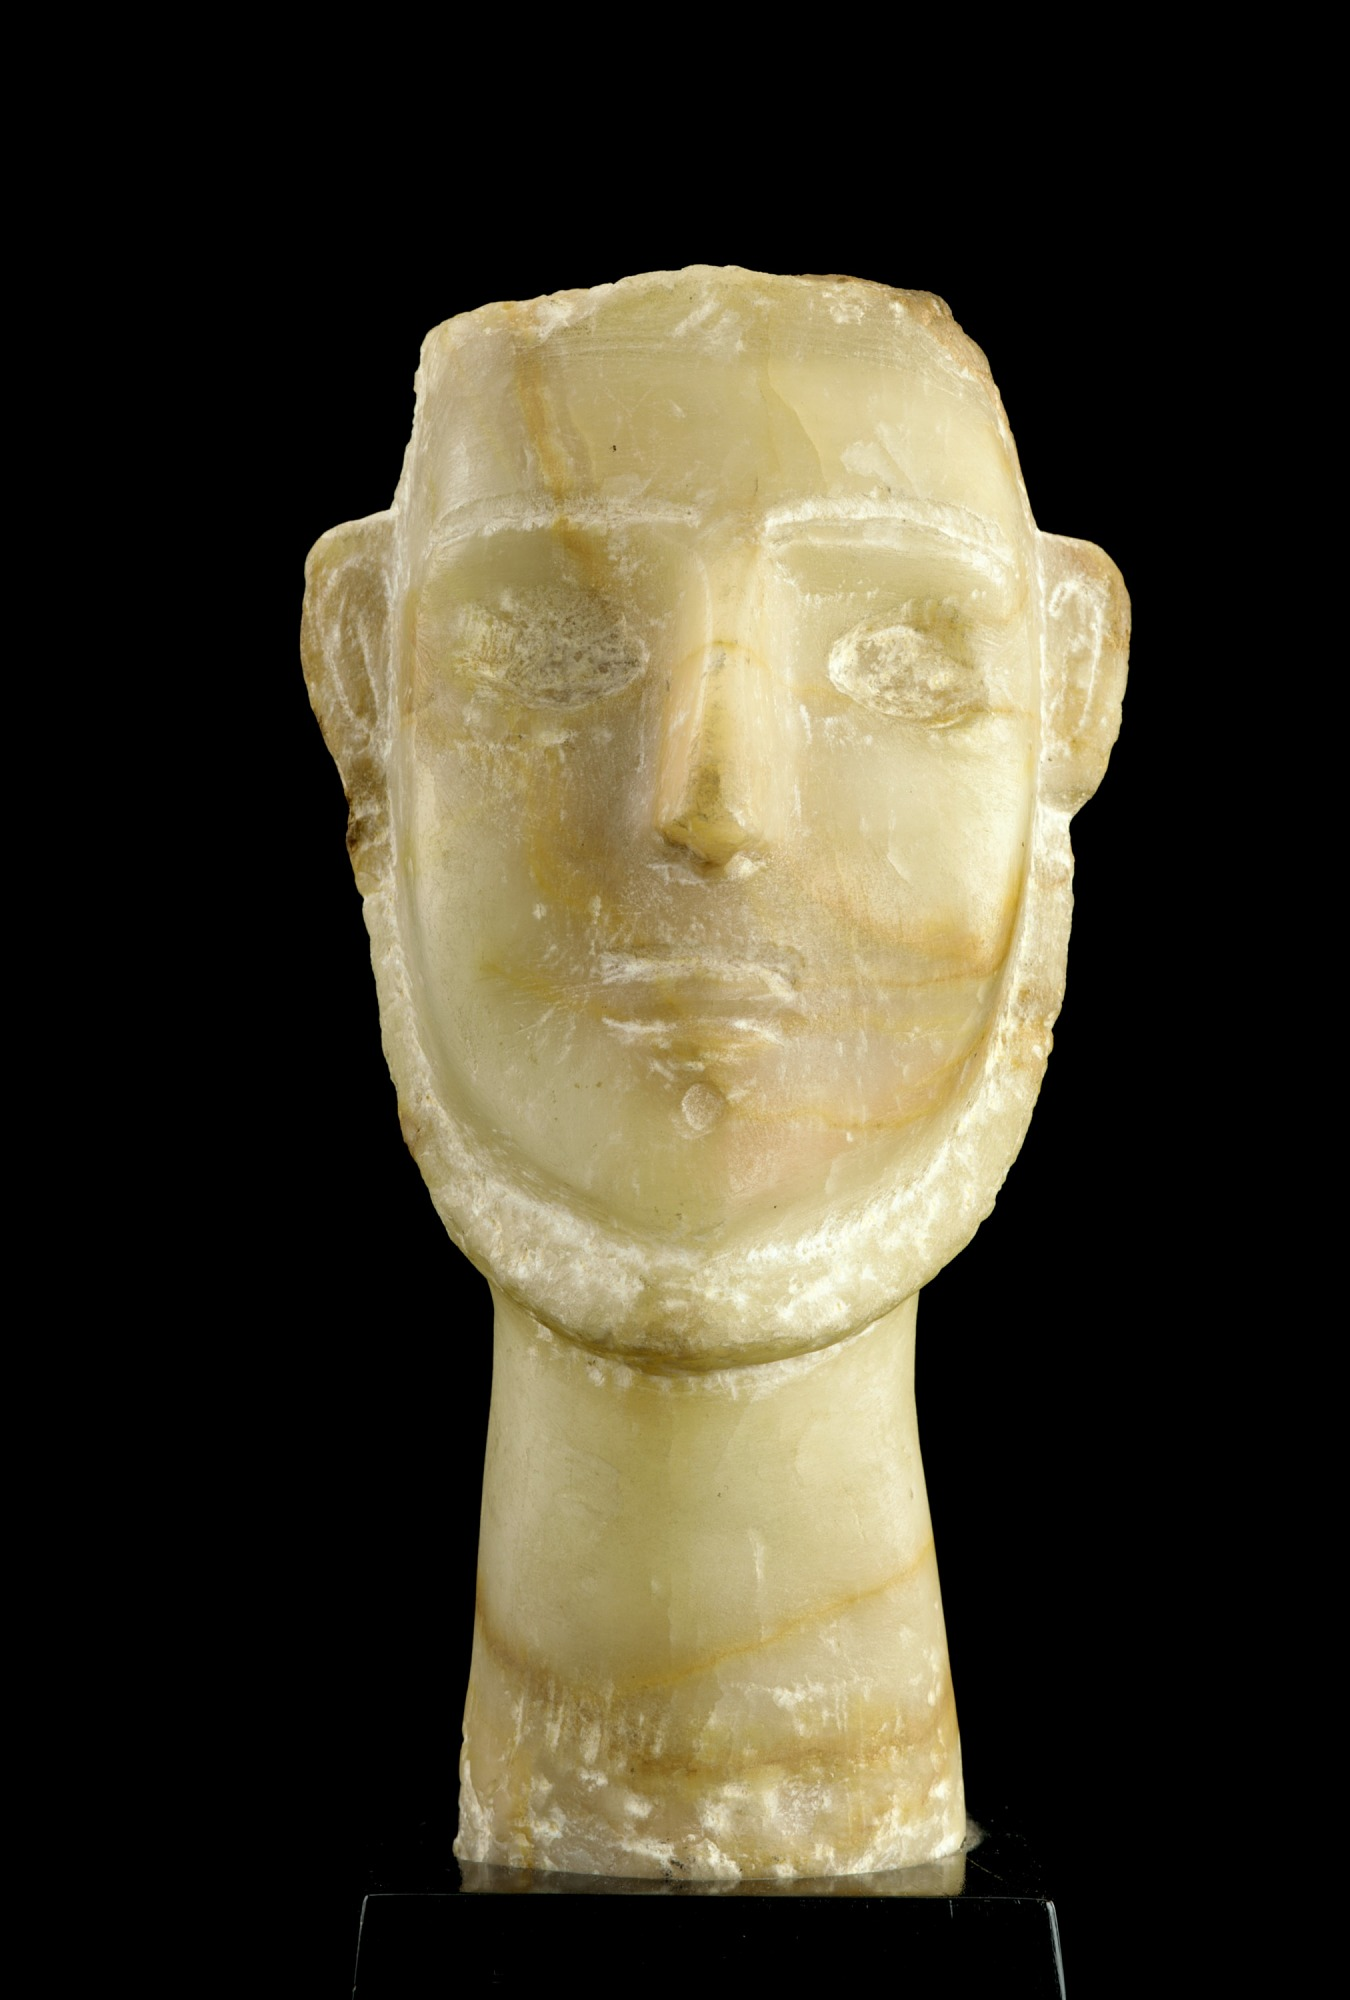 : Stele with man's head